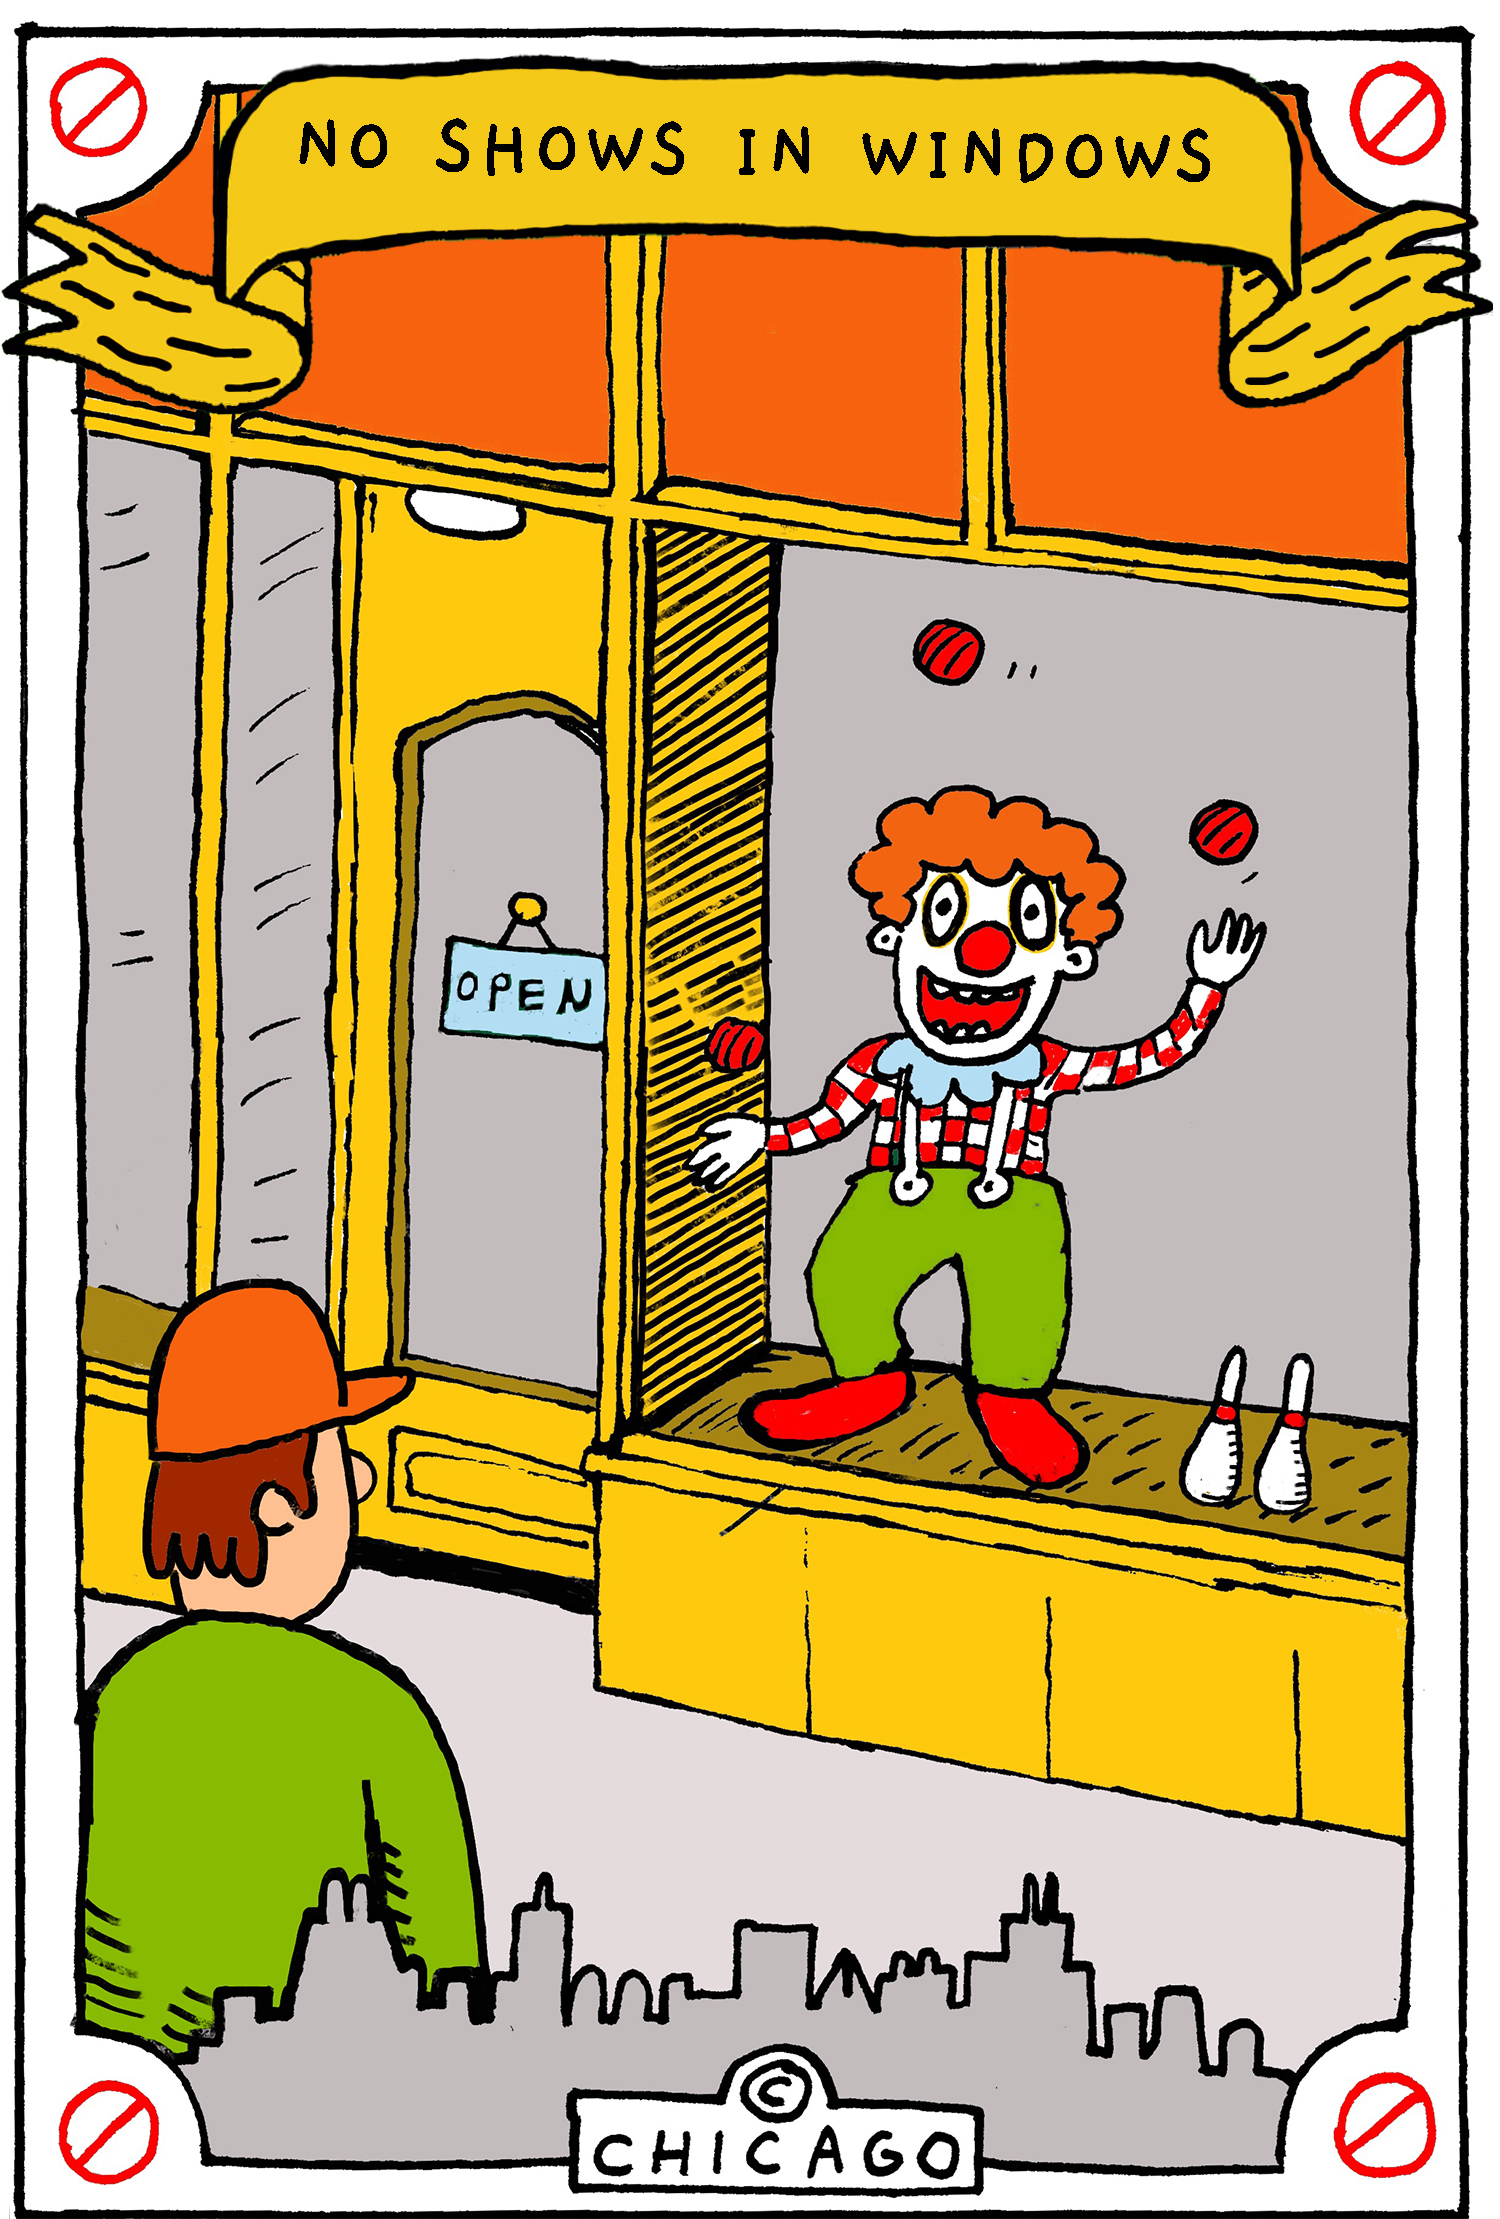 This is a drawing of a clown performing a juggling act in a storefront window.